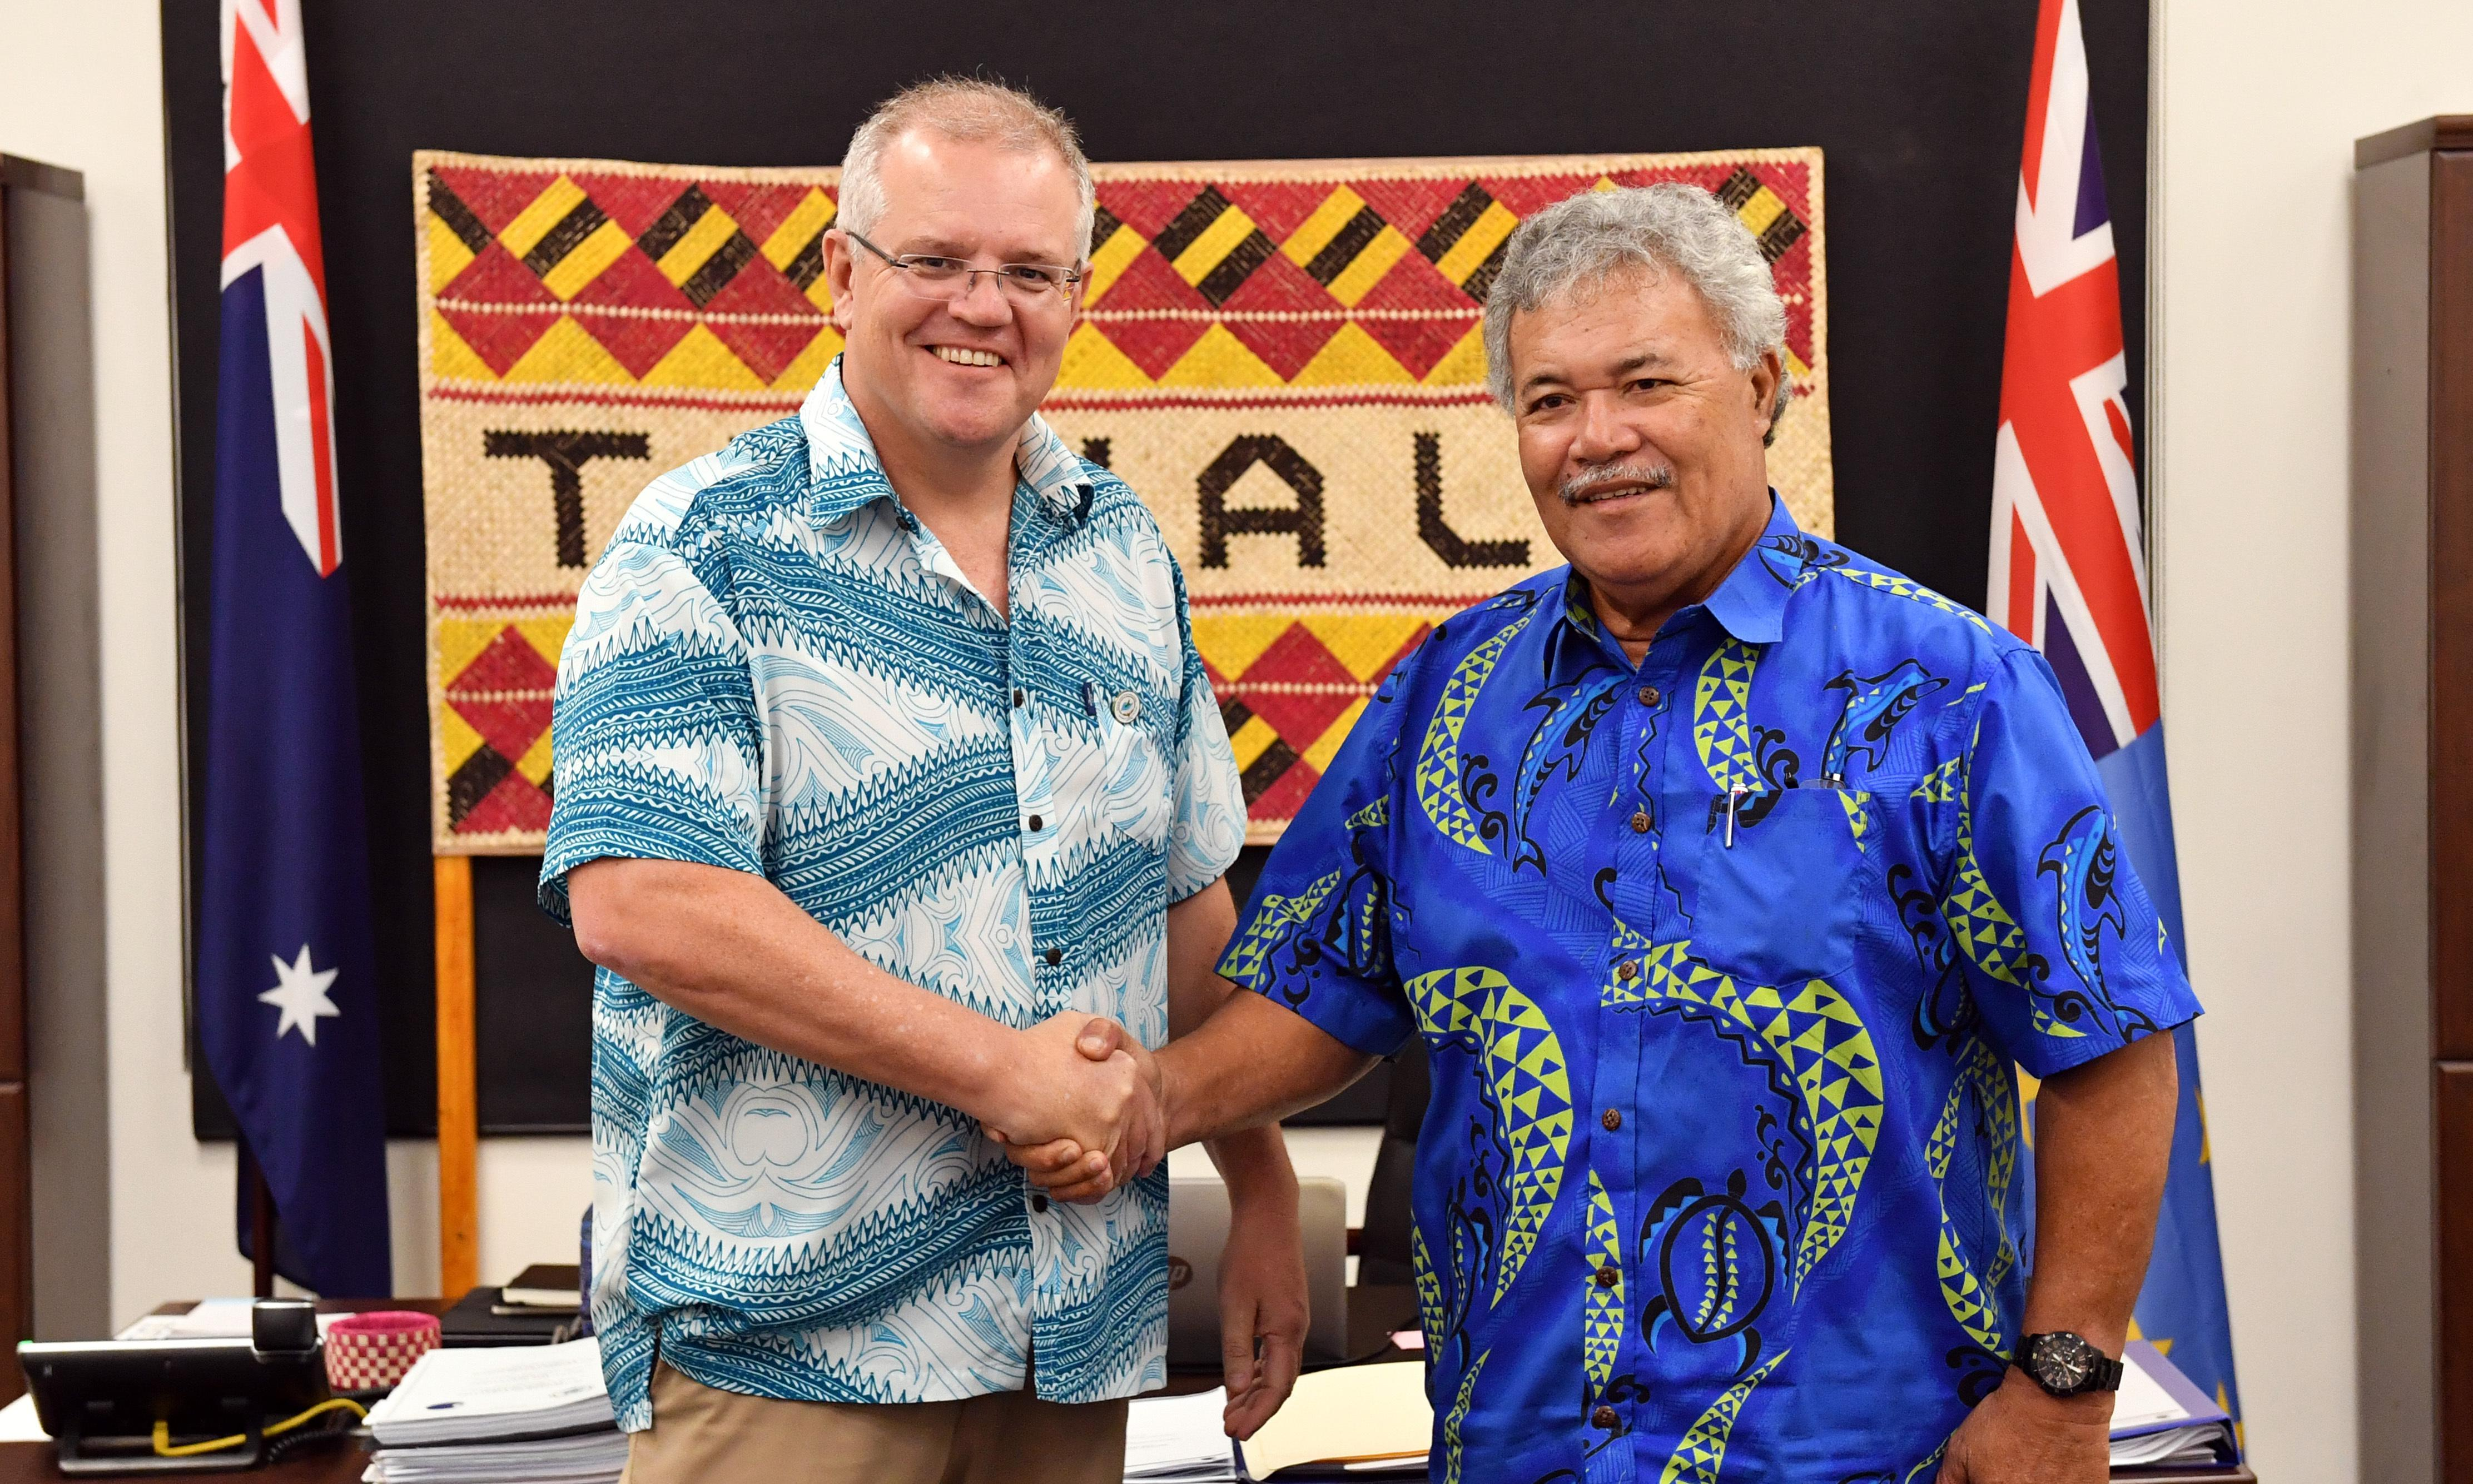 Tuvalu threatens to exit Australia's seasonal worker program after deputy PM's comments